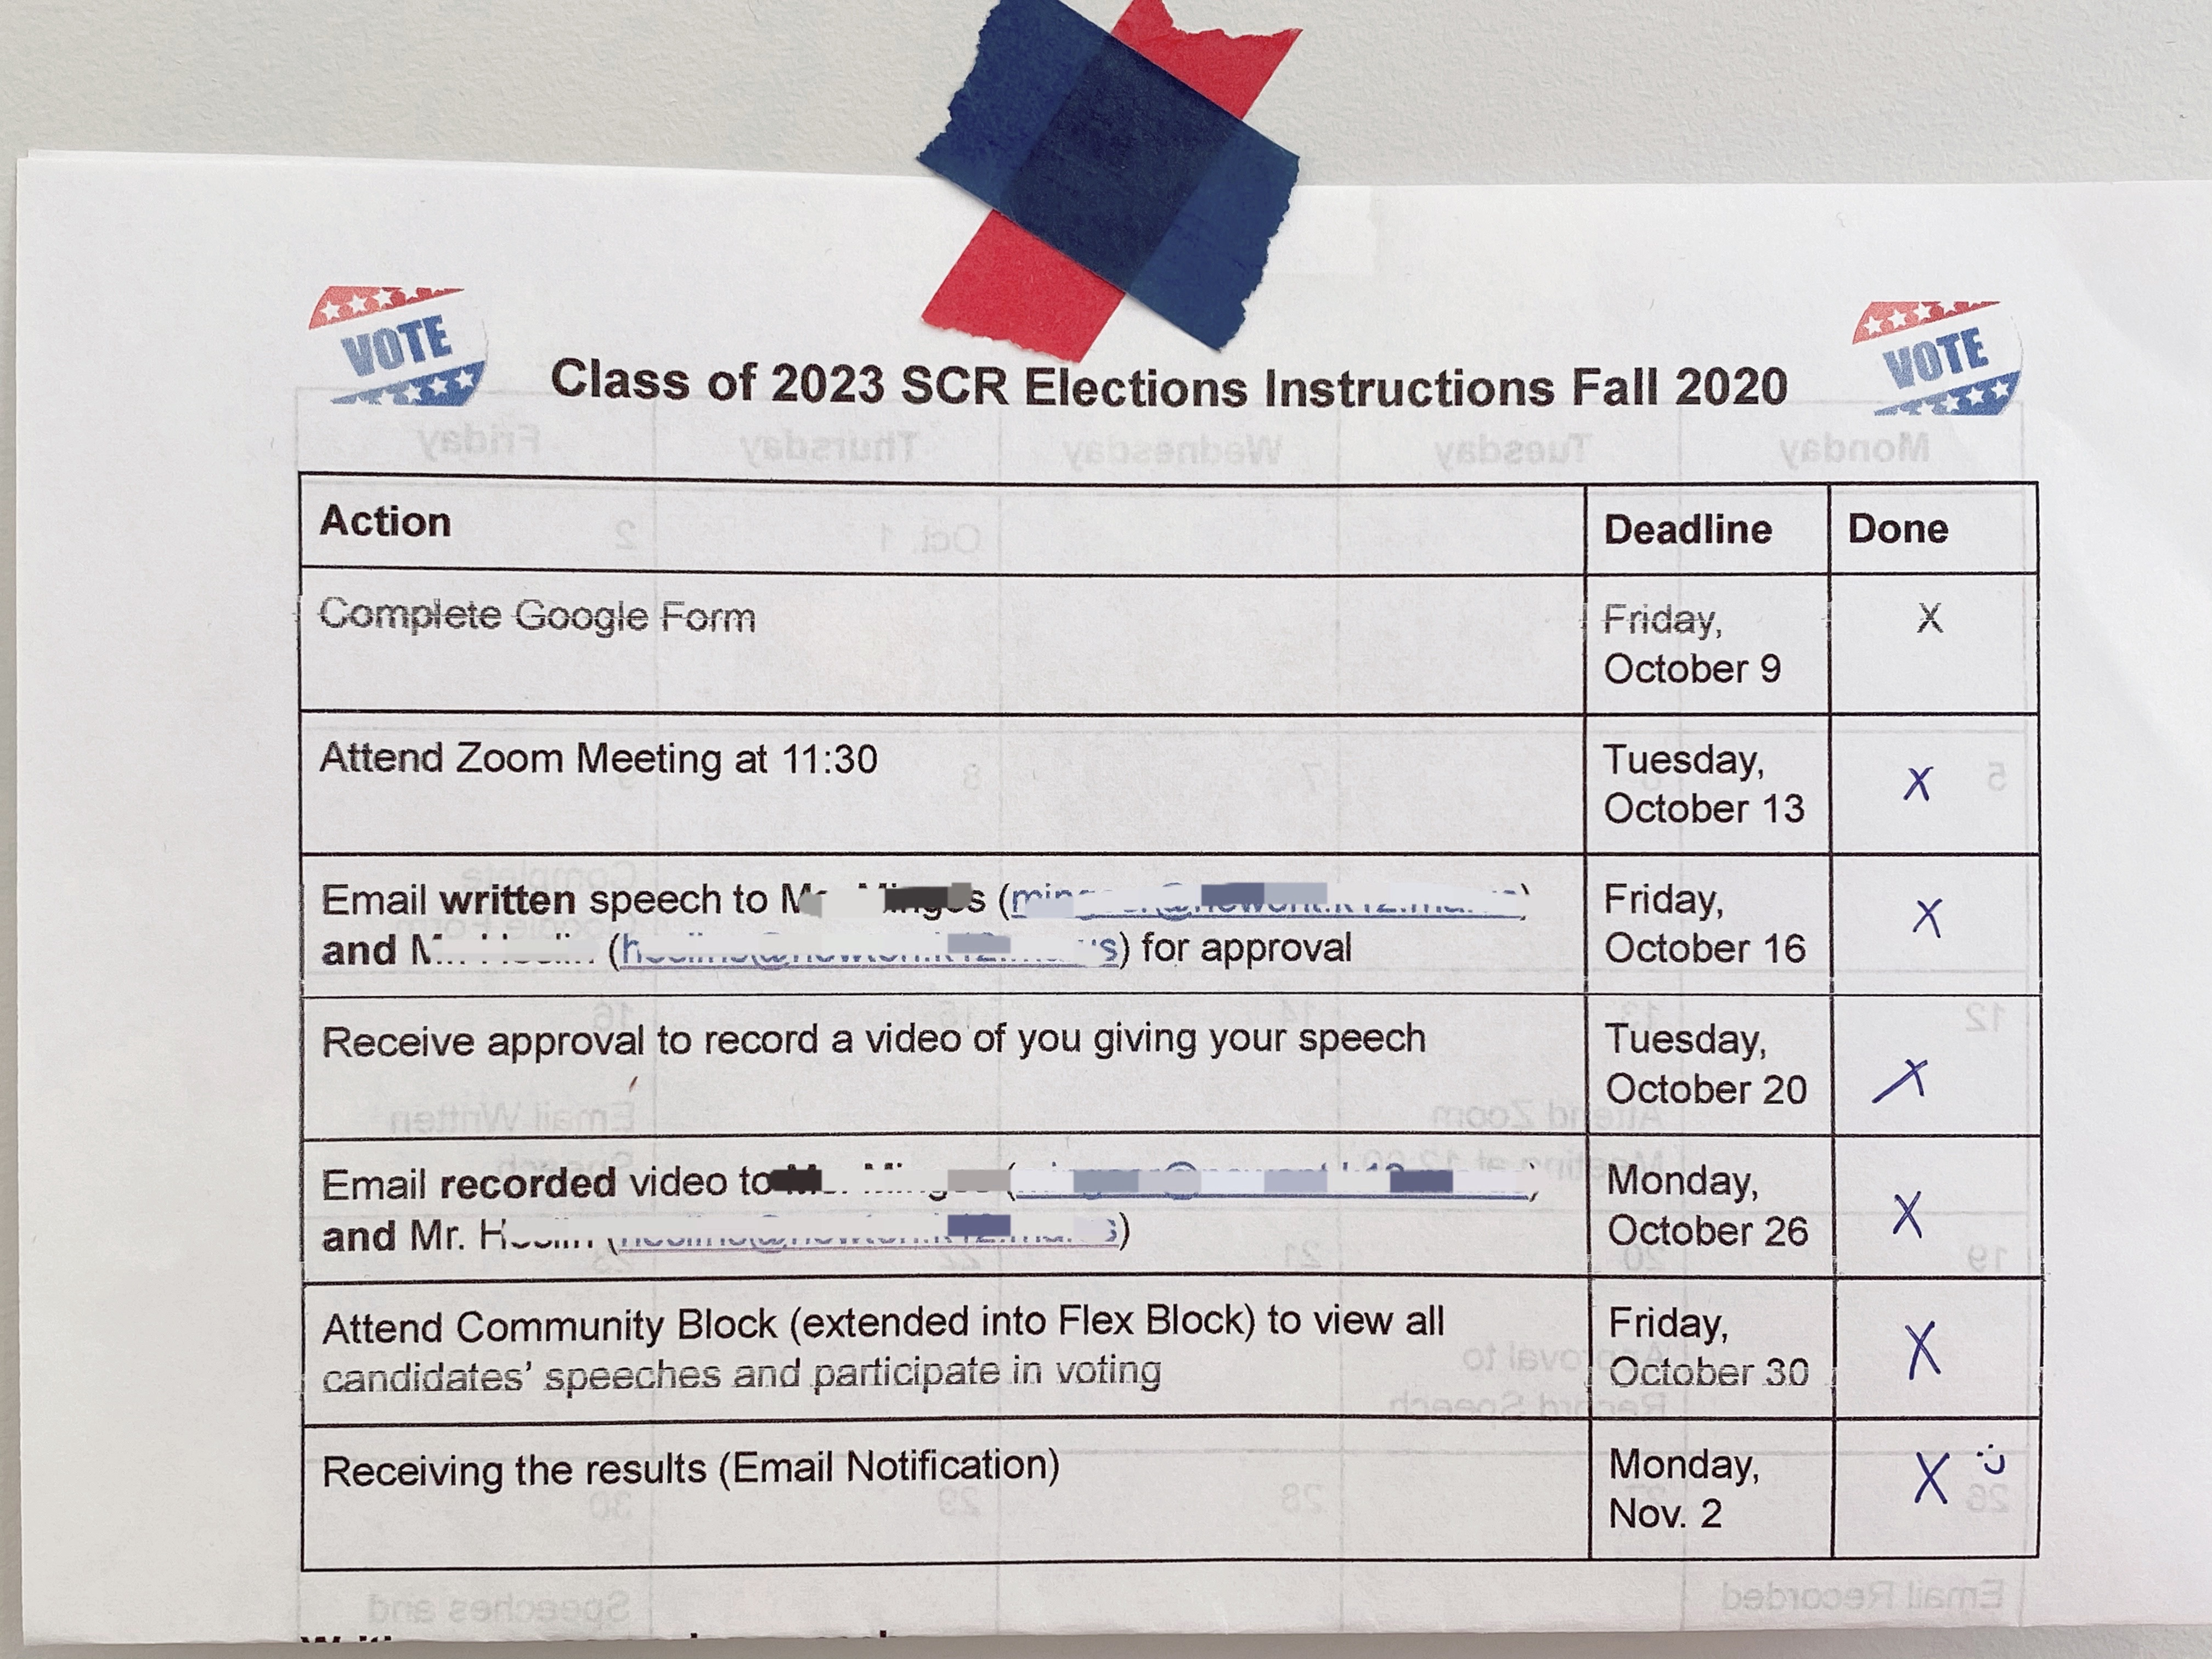 Class of 2023 SCR Elections instructions to-do list for candidates running in fall 2020. Photo taken by the author.